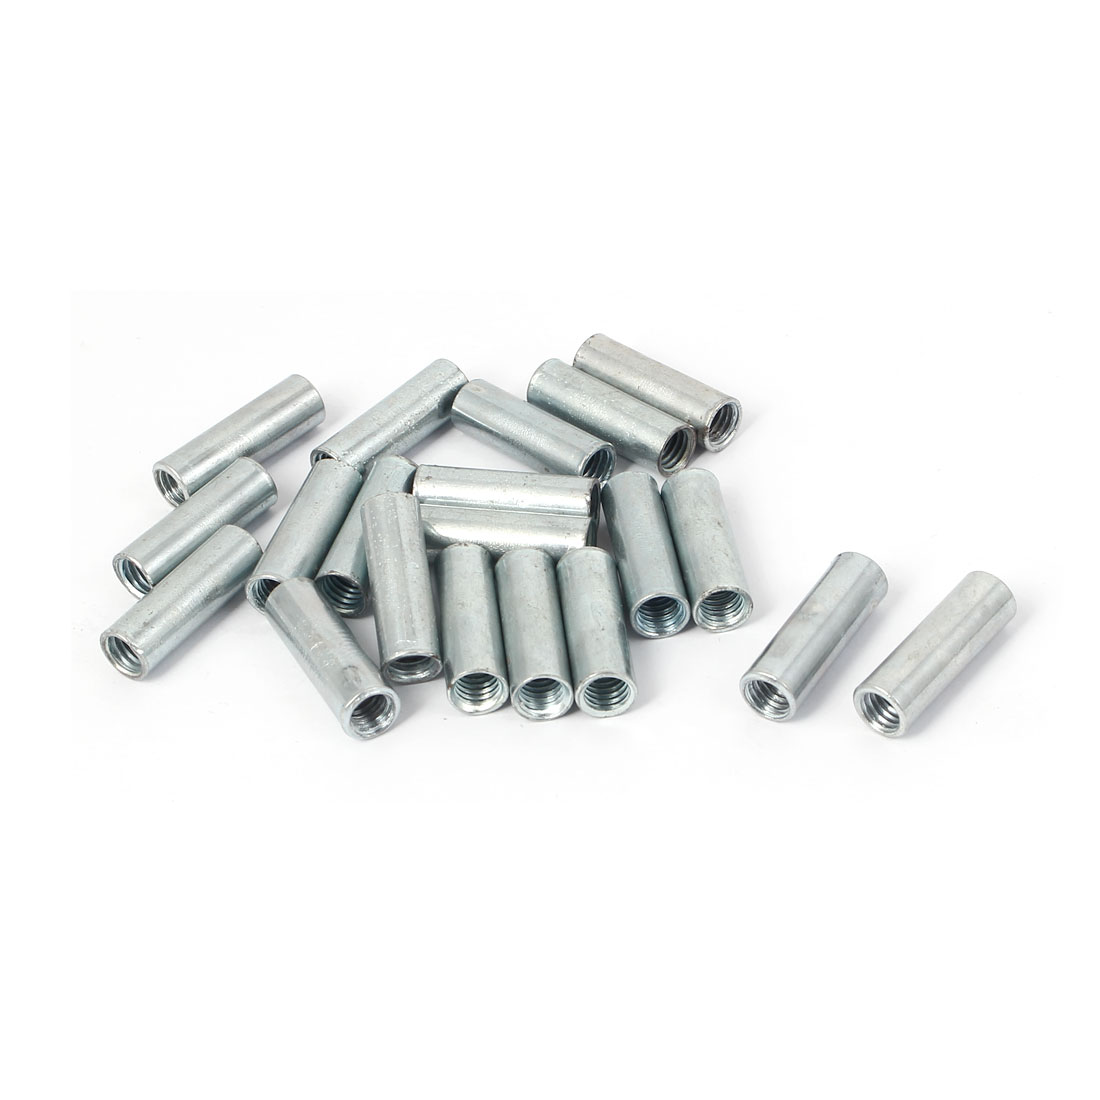 Uxcell m rose joint adapter threaded rod bar stud round